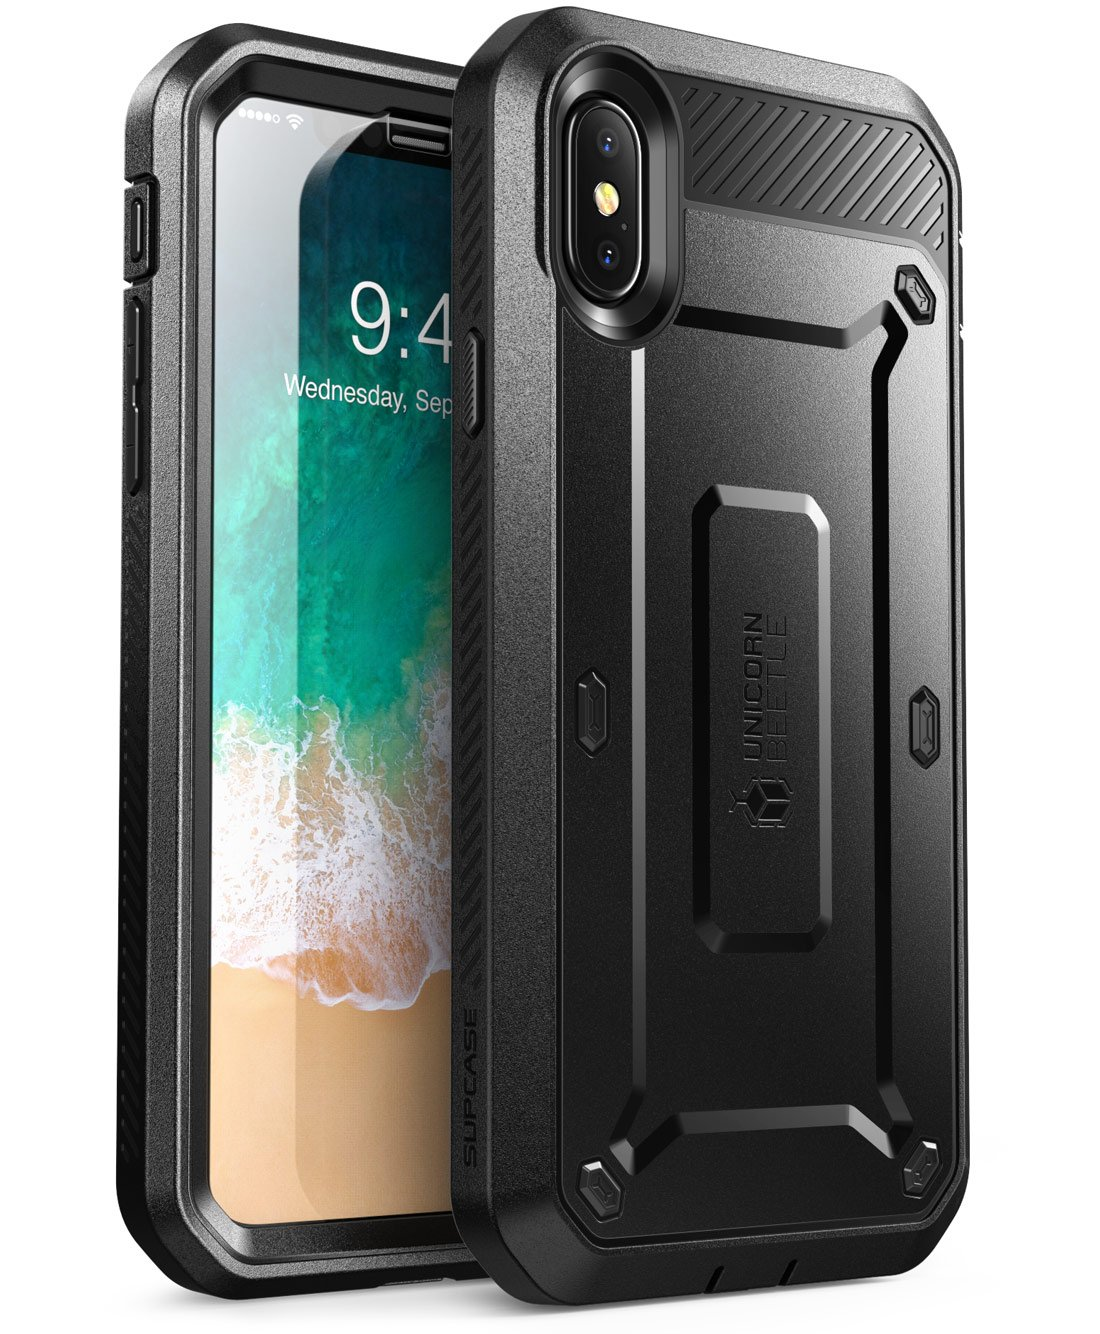 SUPCASE [Unicorn Beetle Pro Series] Case for iPhone Xs , iPhone X , Full-Body Rugged Holster Case with Built-In Screen Protector Kickstand for iPhone X 2017 & iPhone Xs 5.8 inch 2018 Release (Black) by SupCase